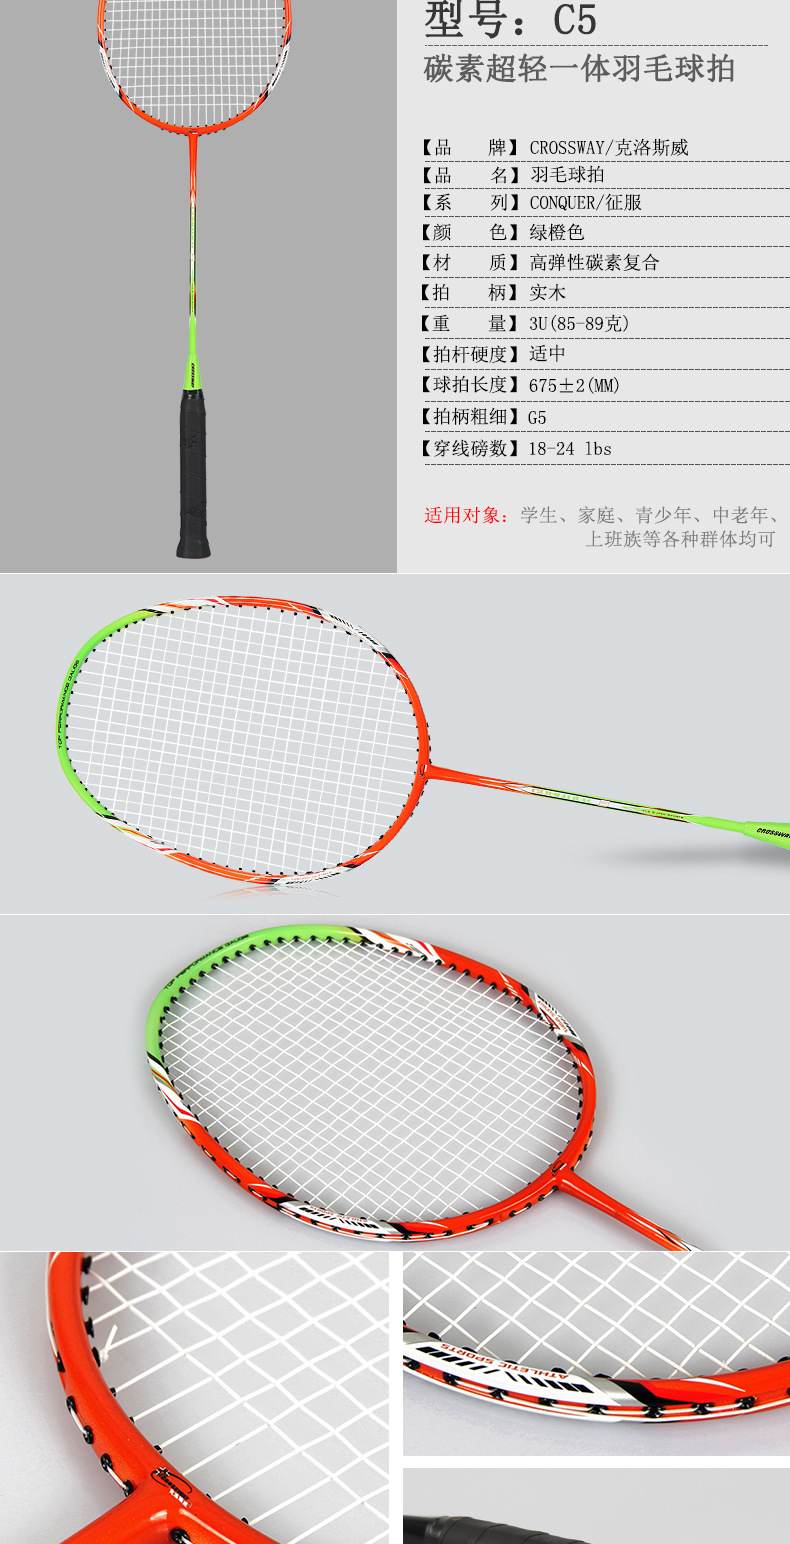 Crossway 2Pcs Best Doubles Match Badminton Rackets Carbon Smash Championships Shuttlecock Speedminton Racquets Equipment Kit Set 11